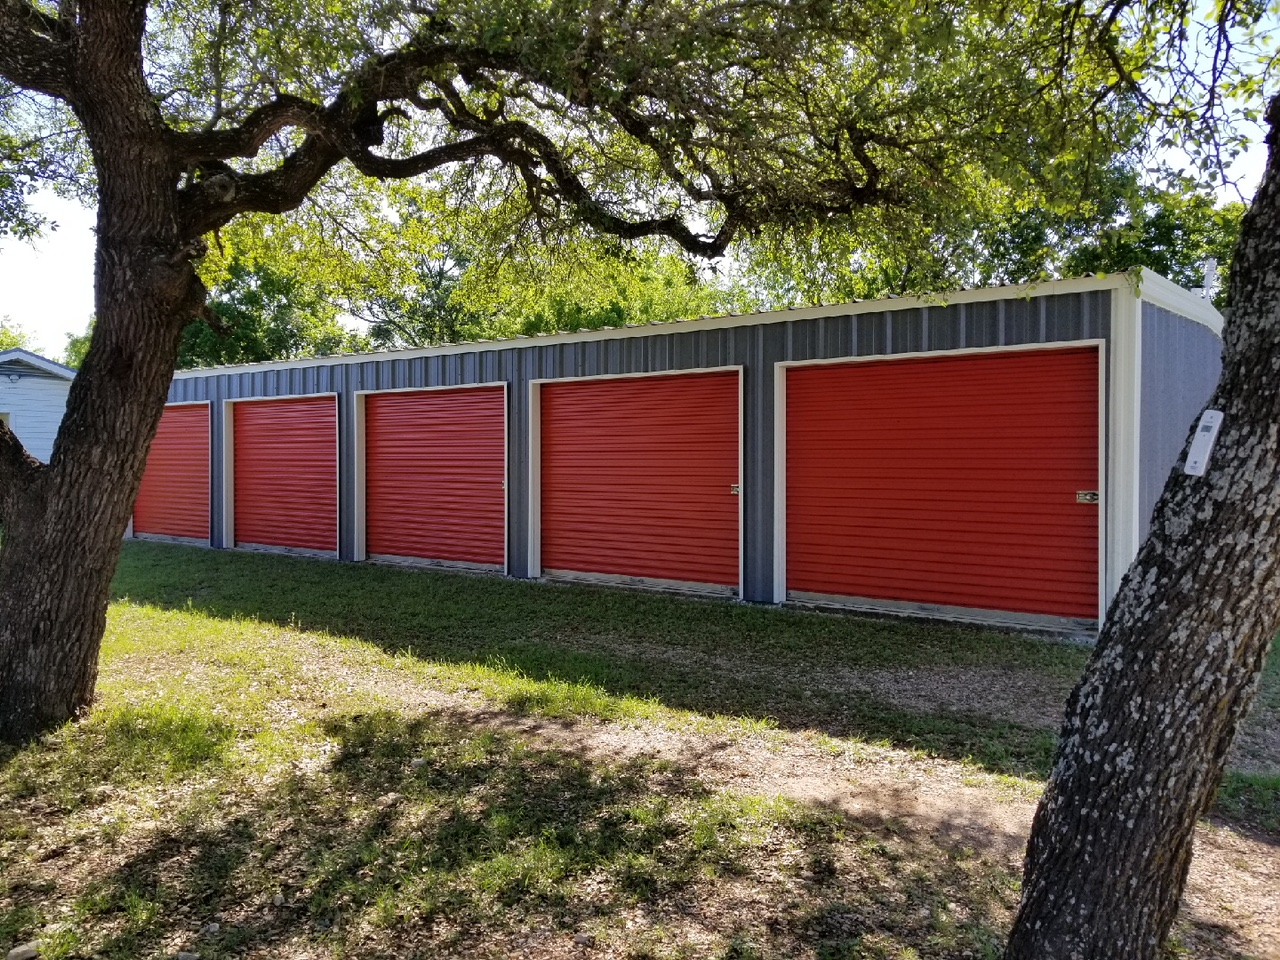 Silverado Storage - 5 Units / 10x20 / $85 monthly / currently all unit leased. For more information contact us at 512.948.1739.